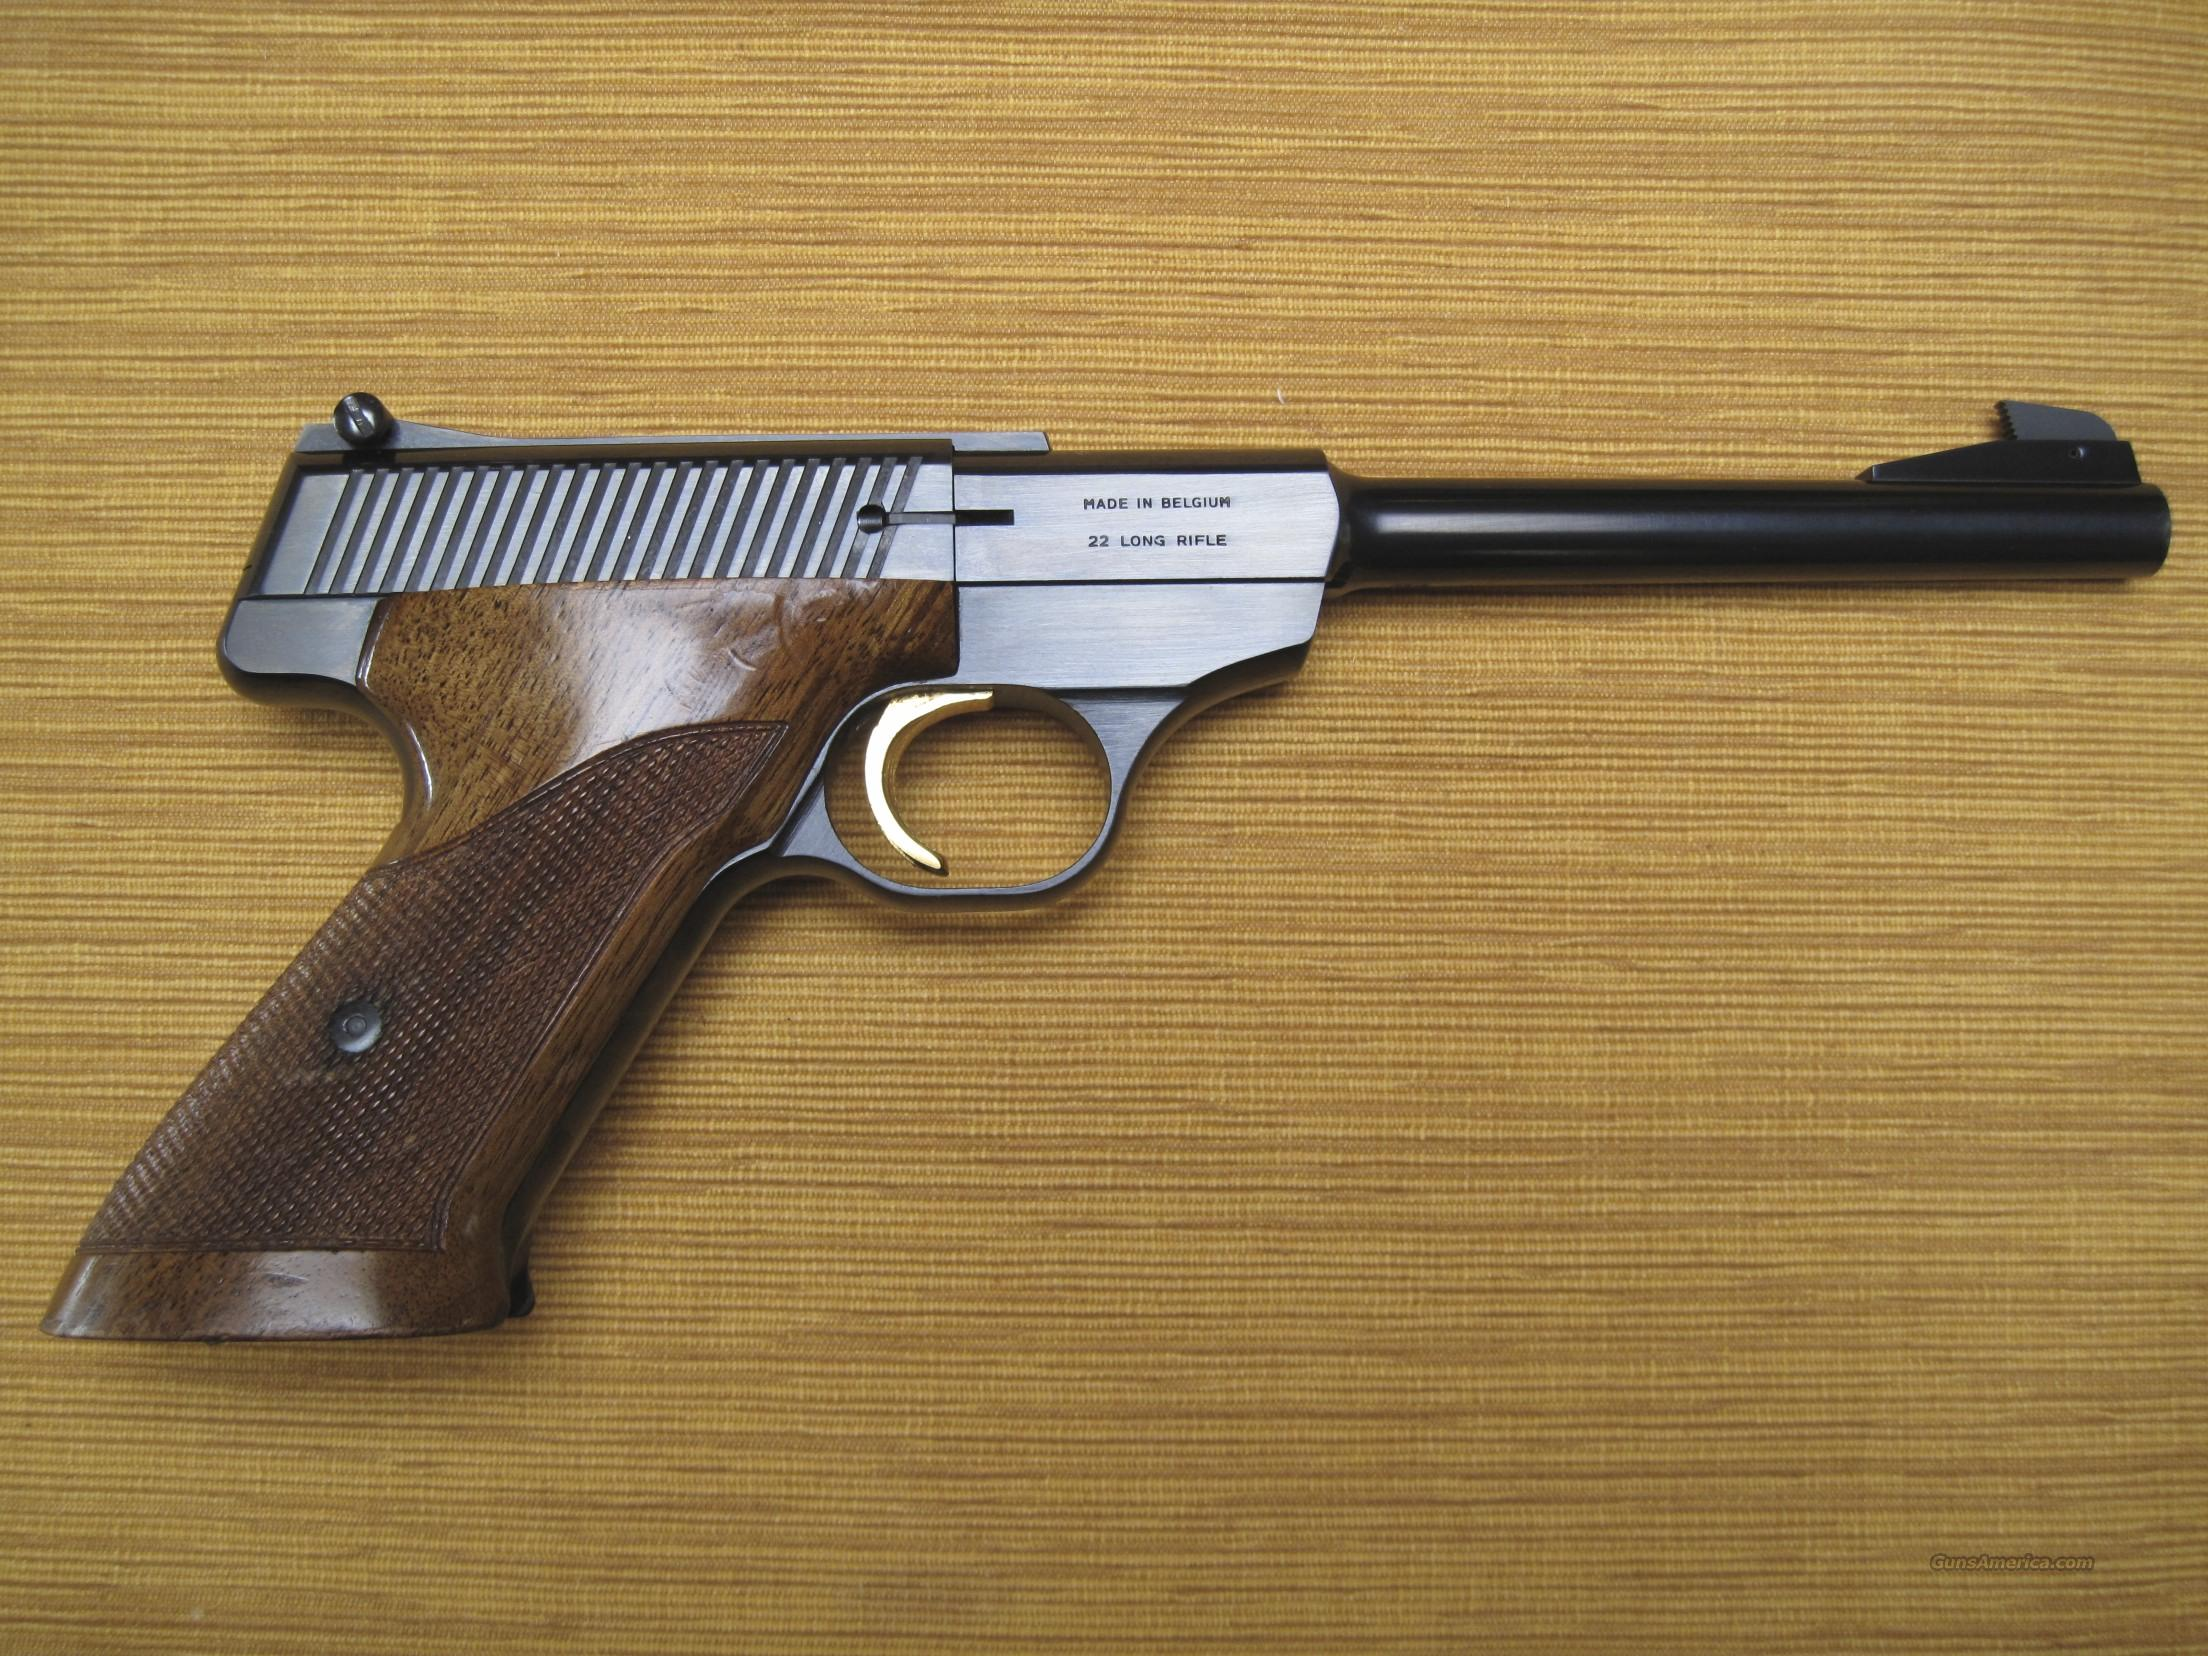 Thrifty Sacramento Airport >> Browning Challenger 3.Belgian Made Browning Challenger Semi Auto Pistol 22LR . Browning Arms Co ...